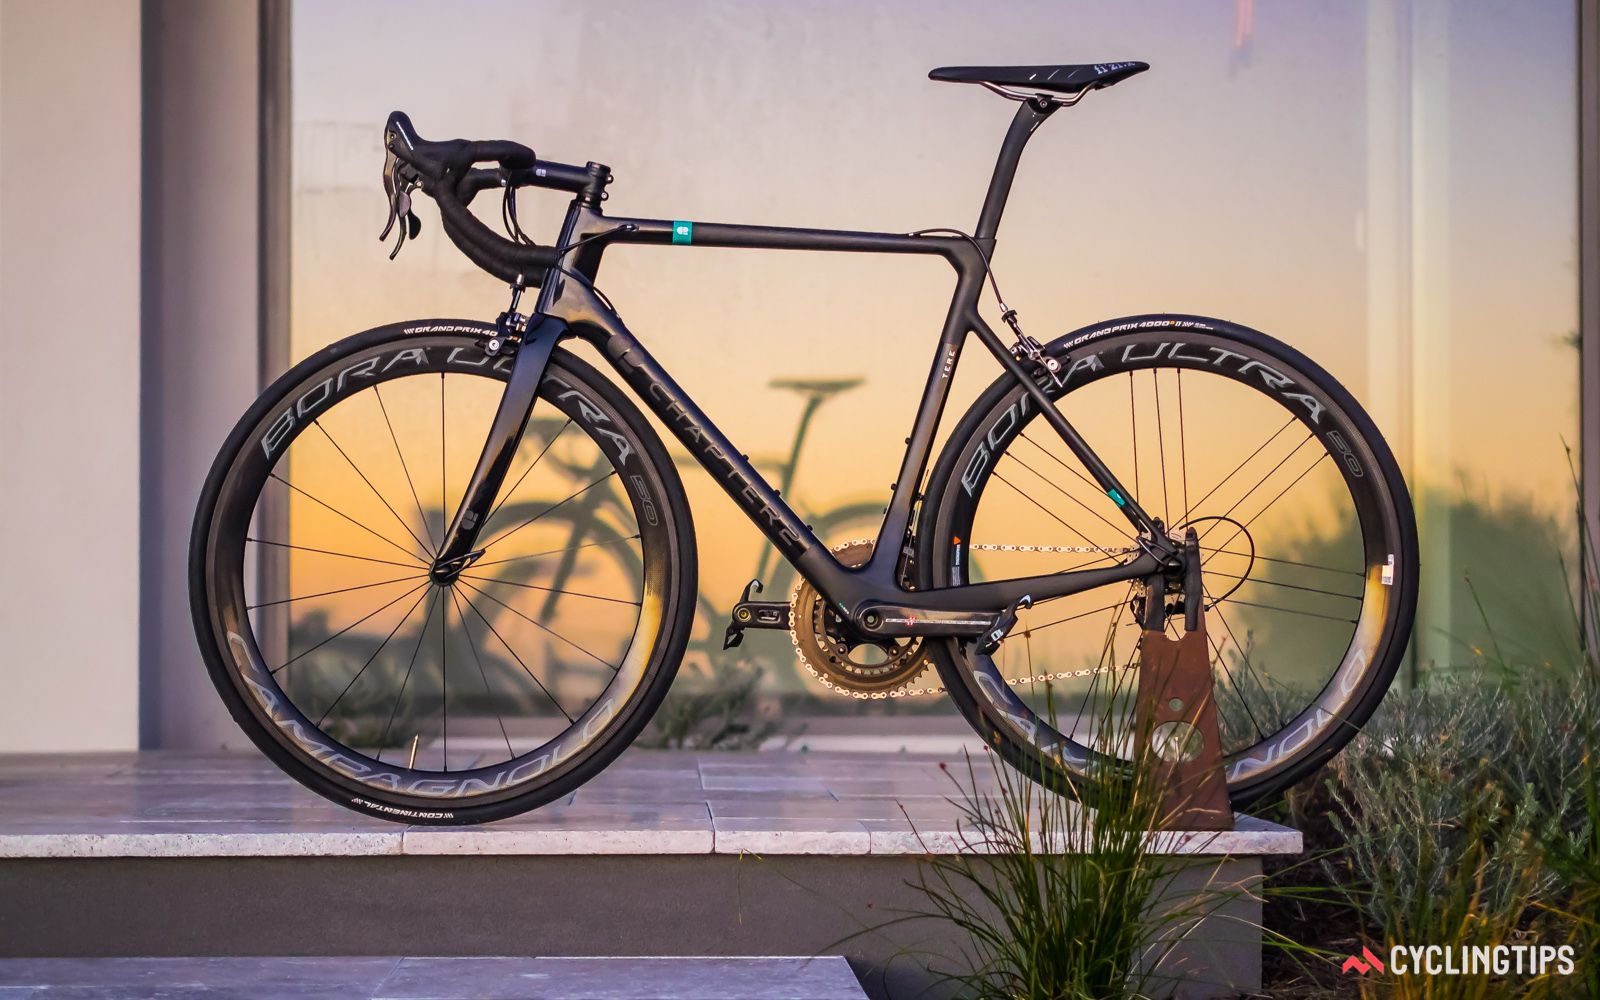 Chapter2 tere frameset review cyclingtips bikes pinterest chapter2 tere frameset review cyclingtips sciox Image collections